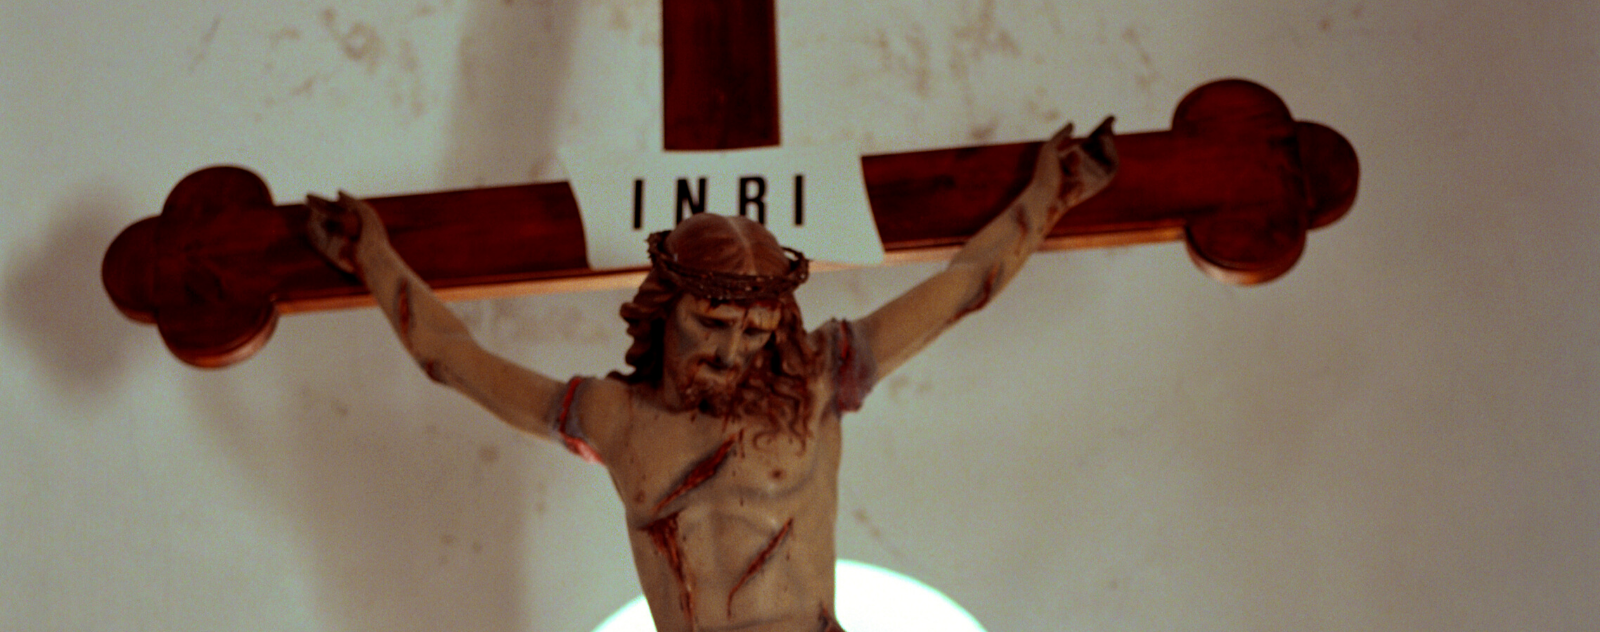 INRI Christian cross